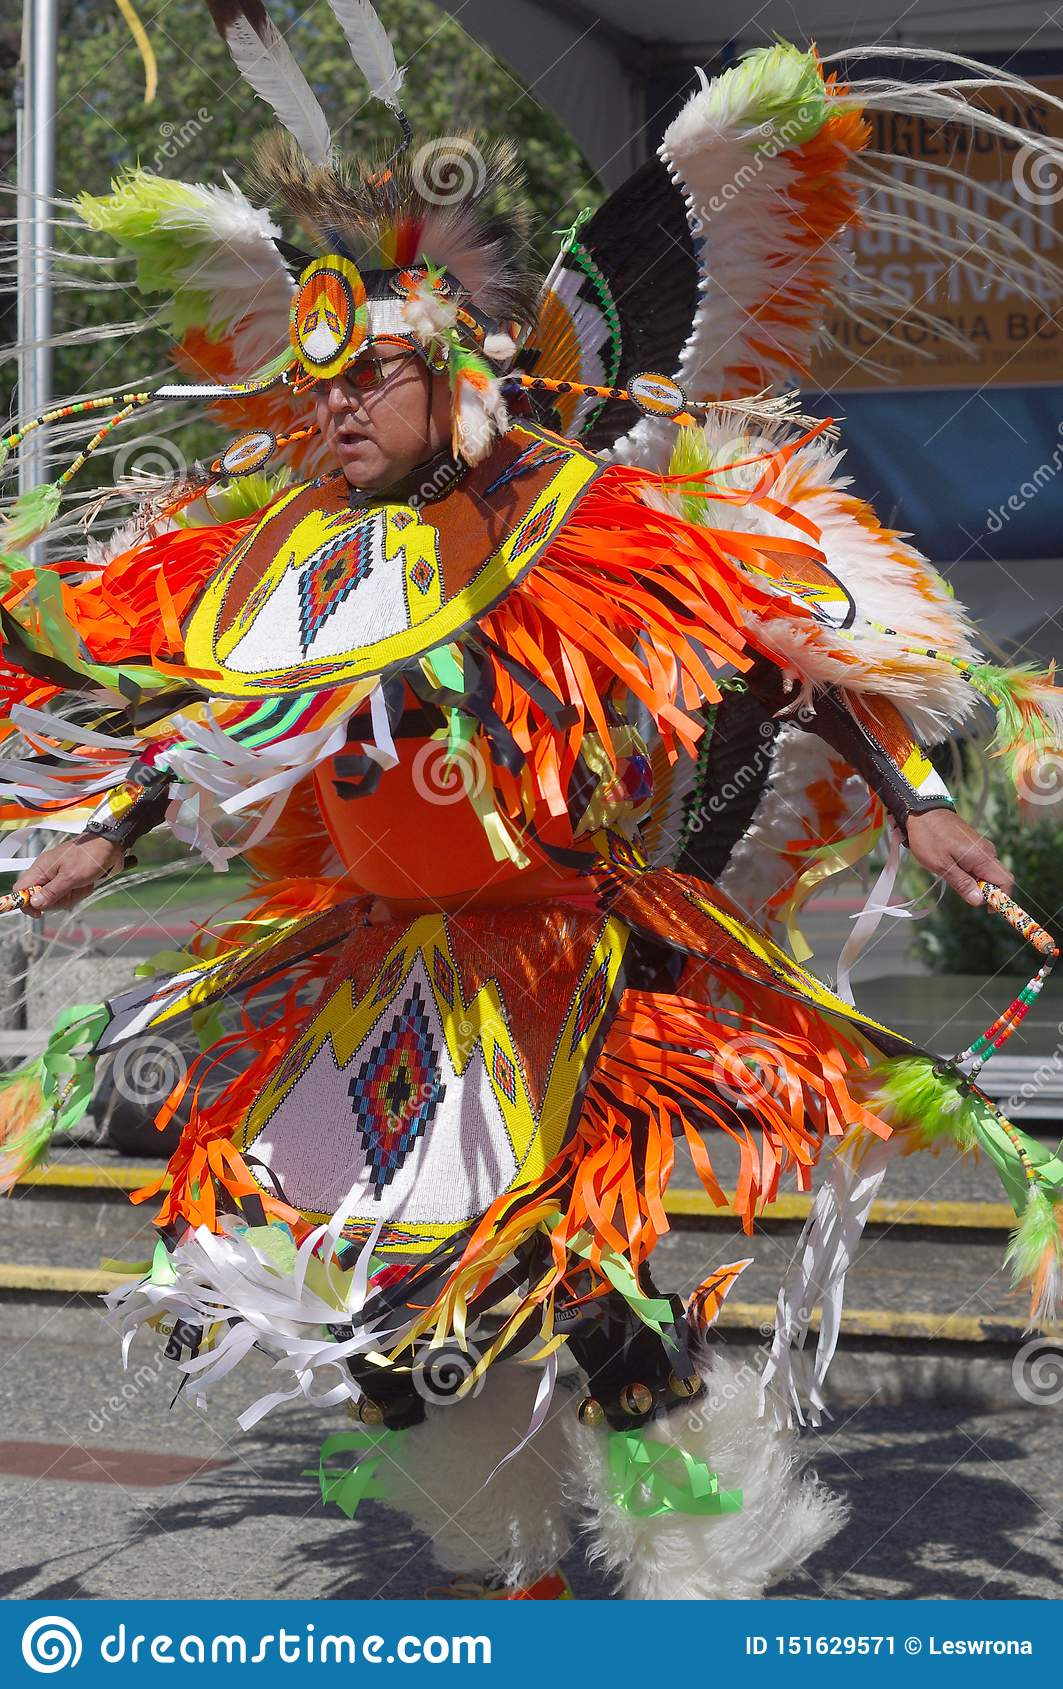 Huge Toronto Pow Wow to raise funds for youth centre